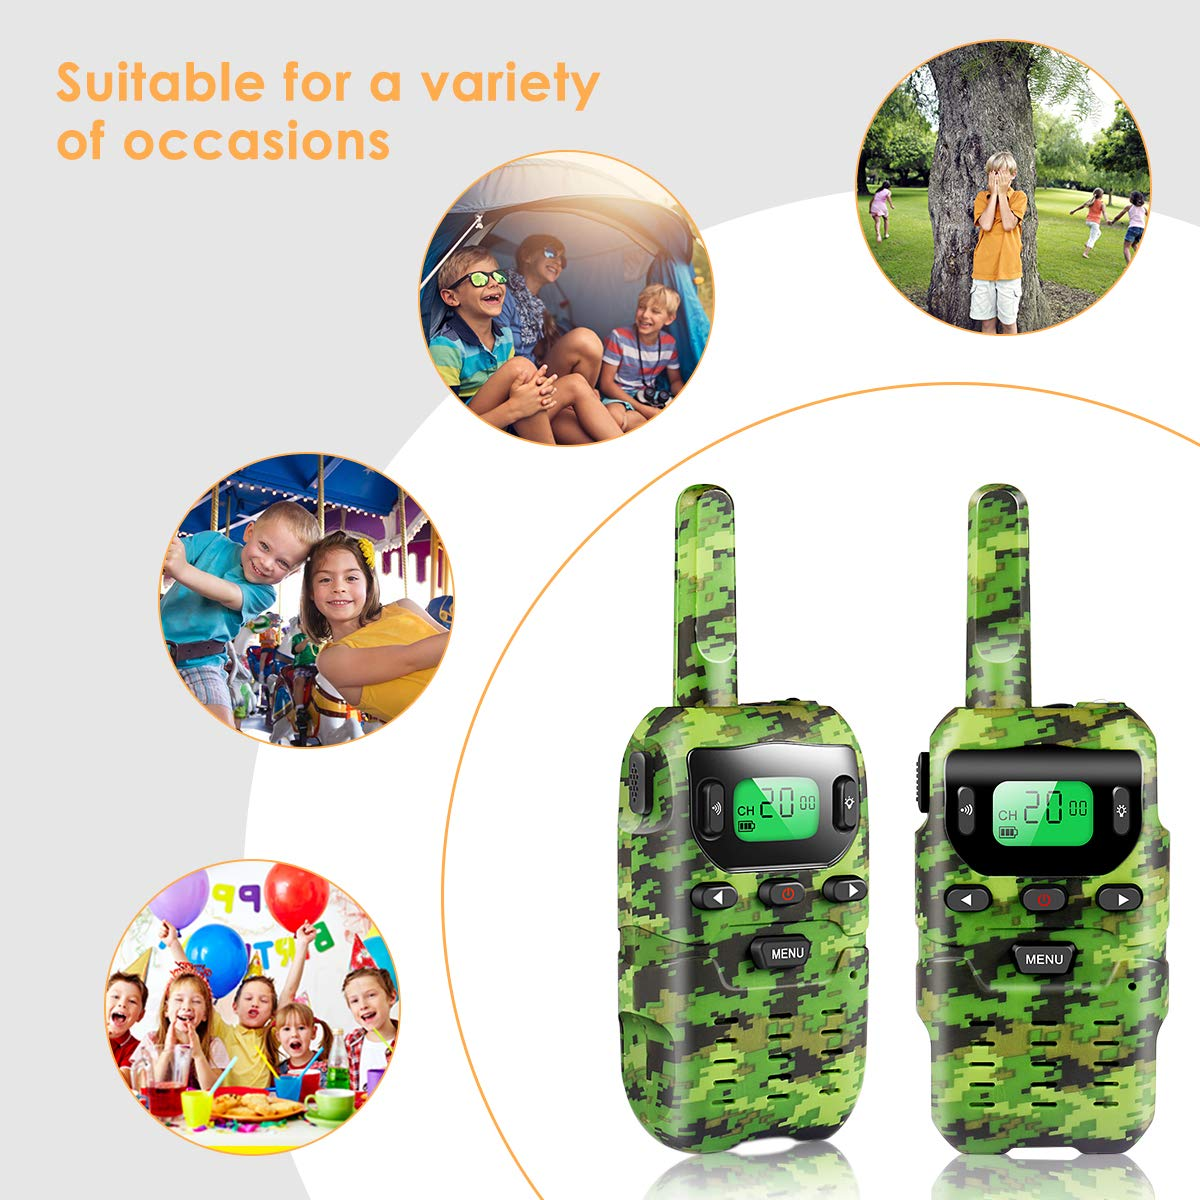 UOKOO Walkie Talkies for Kids, Toys for 3-12 Year Old Boys 22 Channel 3 Mile Long Range Kids Toys and Kids Walkie Talkies, and Top Toys for for 3 4 5 6 7 8 9 Year Old Boy and Girls by UOKOO (Image #6)